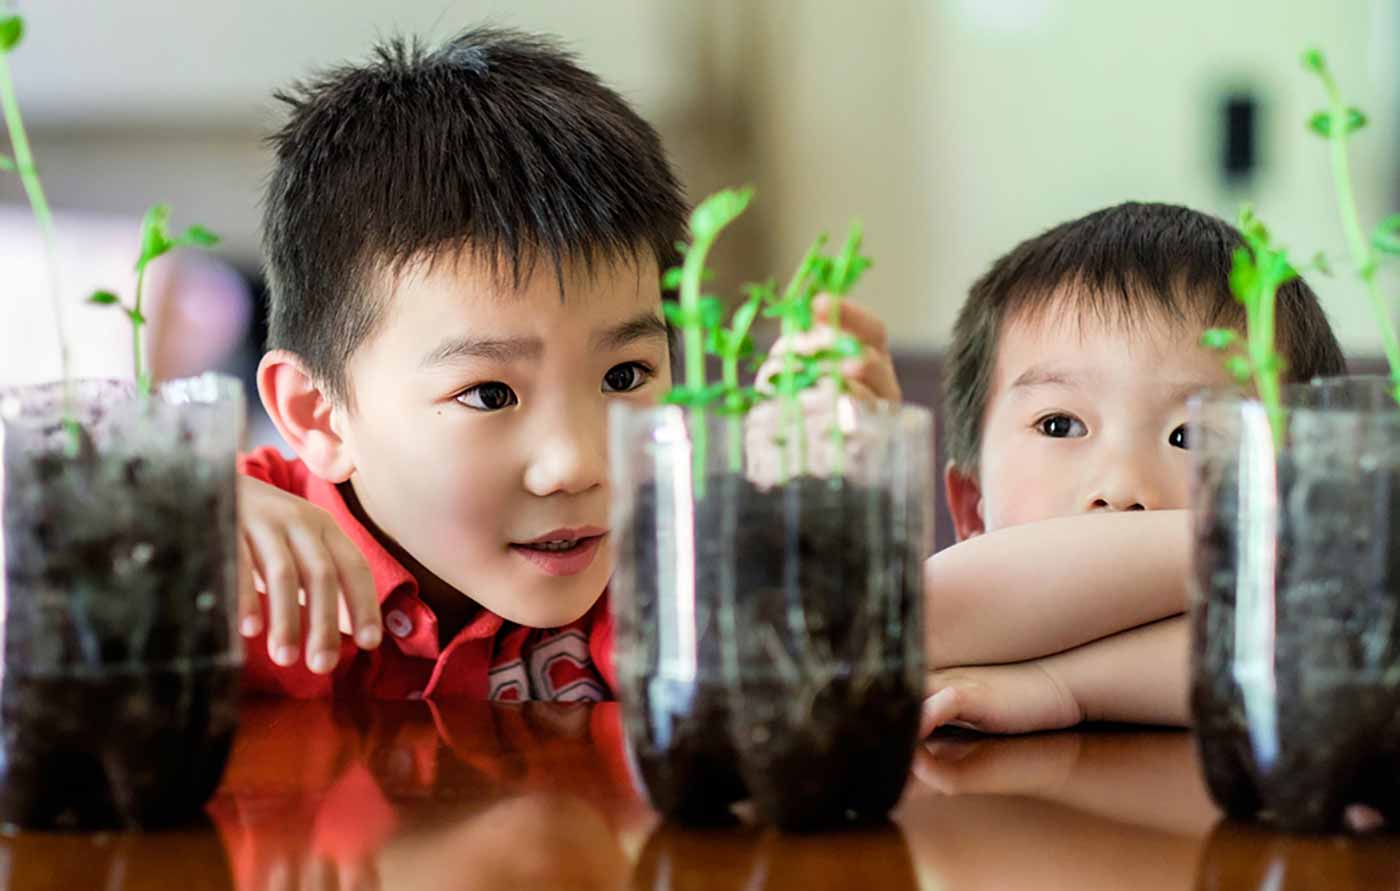 Kids admiring plants in their home.